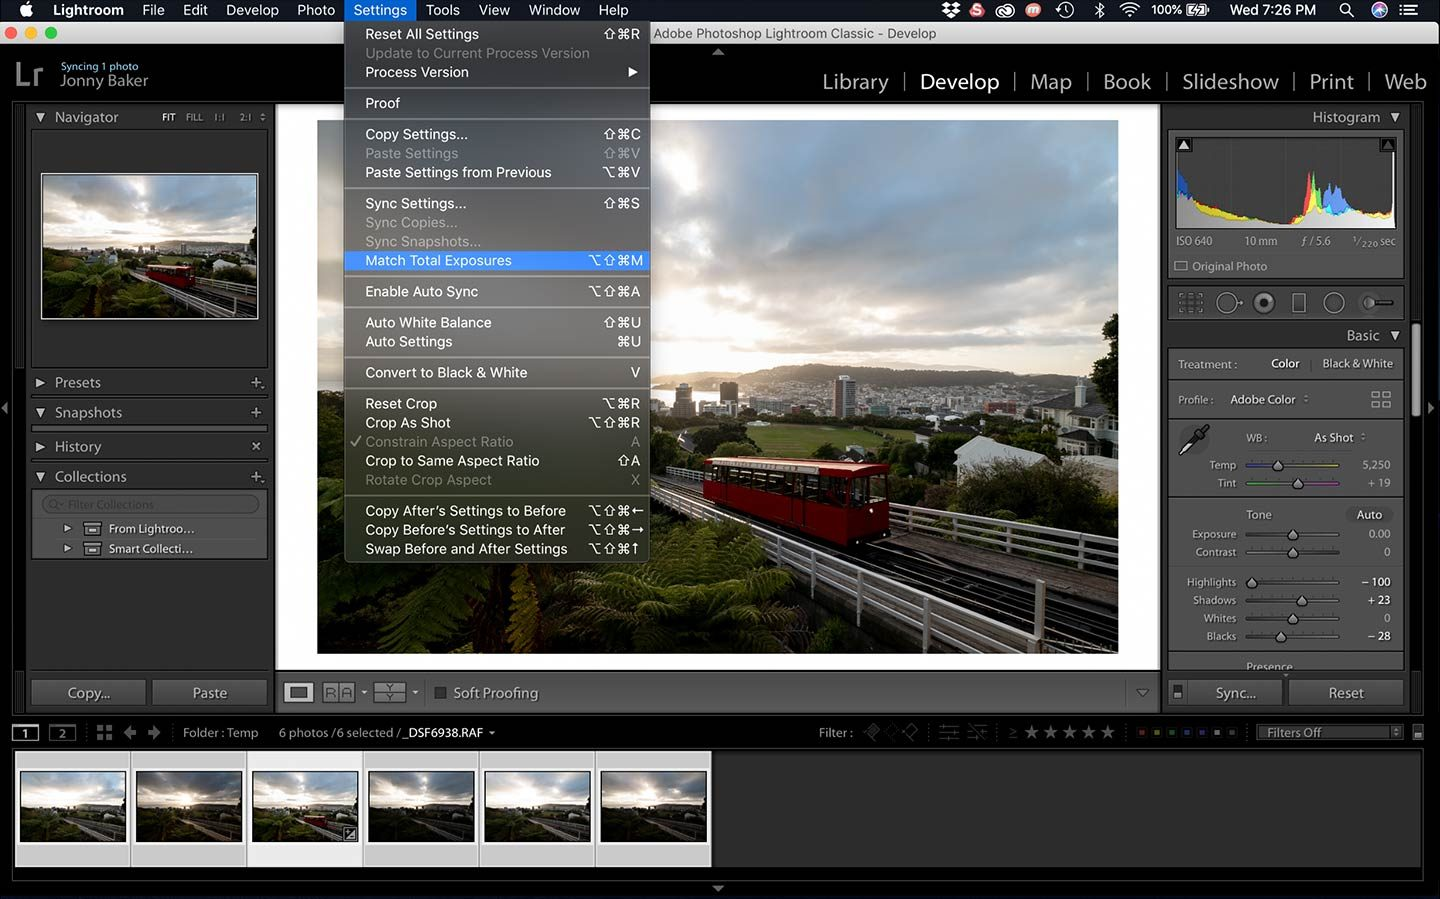 This screenshot shows you how to use Match Total Exposures, a tool in Lightroom